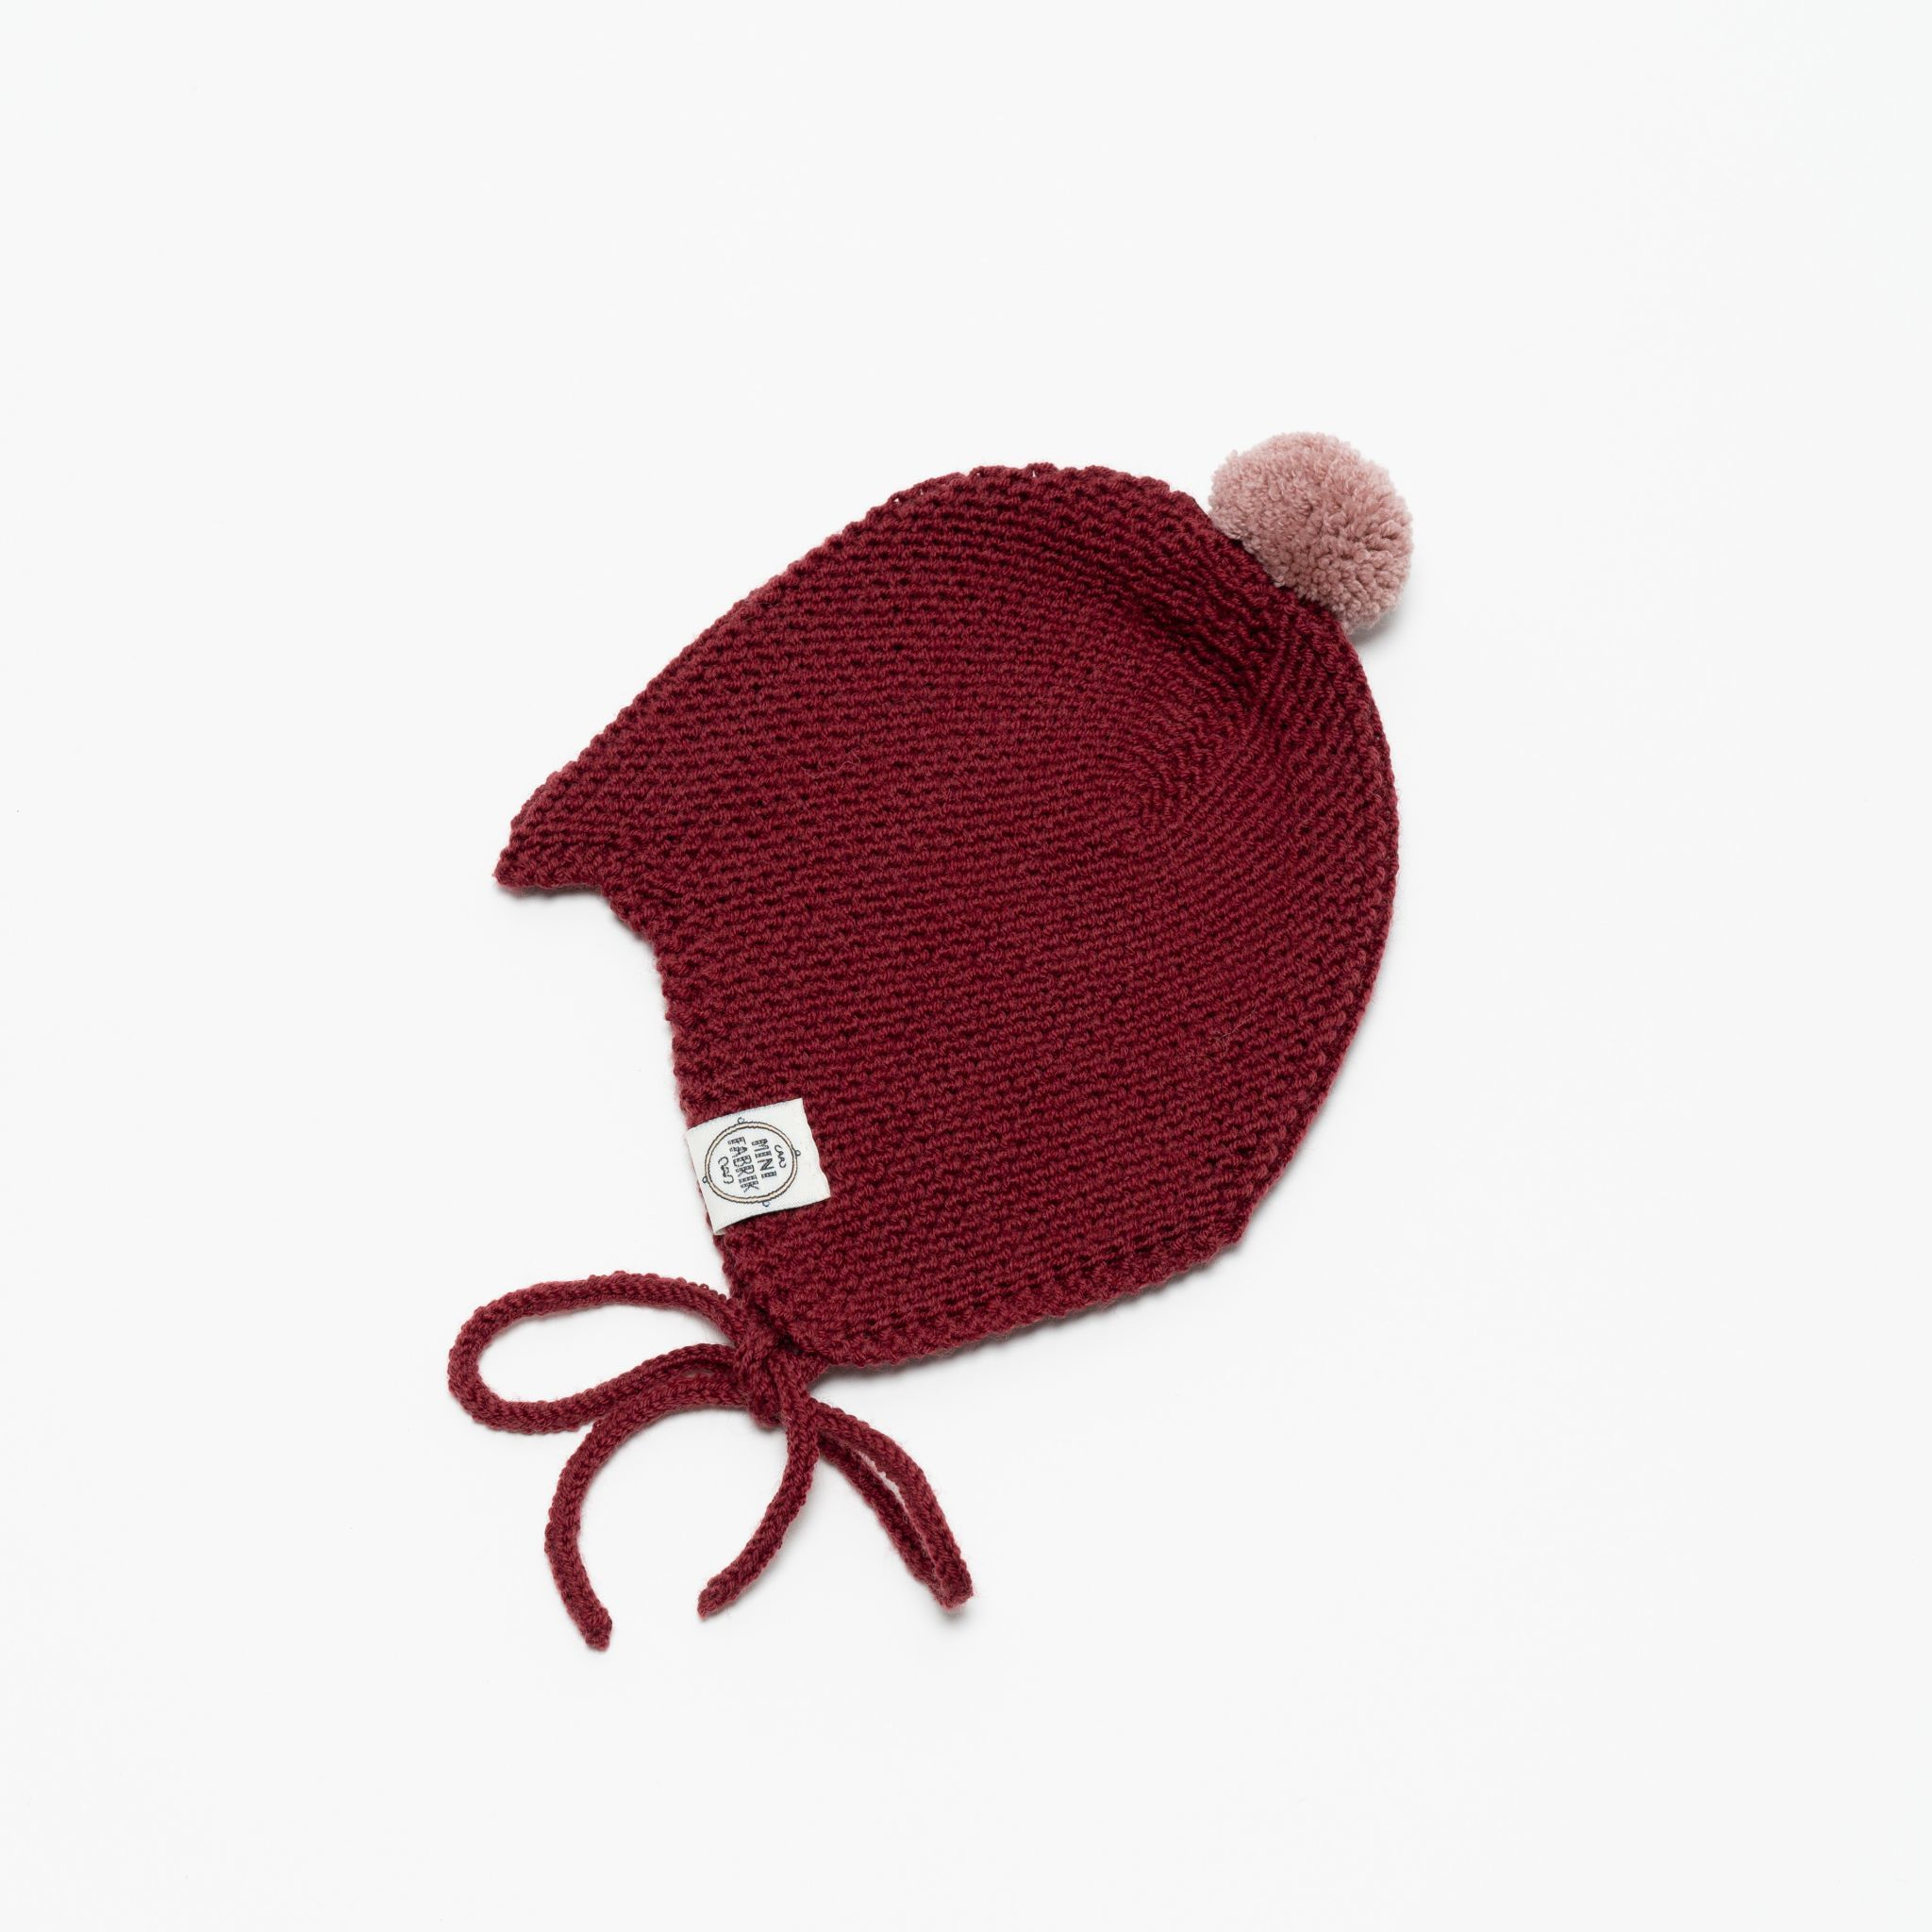 Mini Fabrik Baby Hat Brick Red Mini Fabrik | Zirkuss